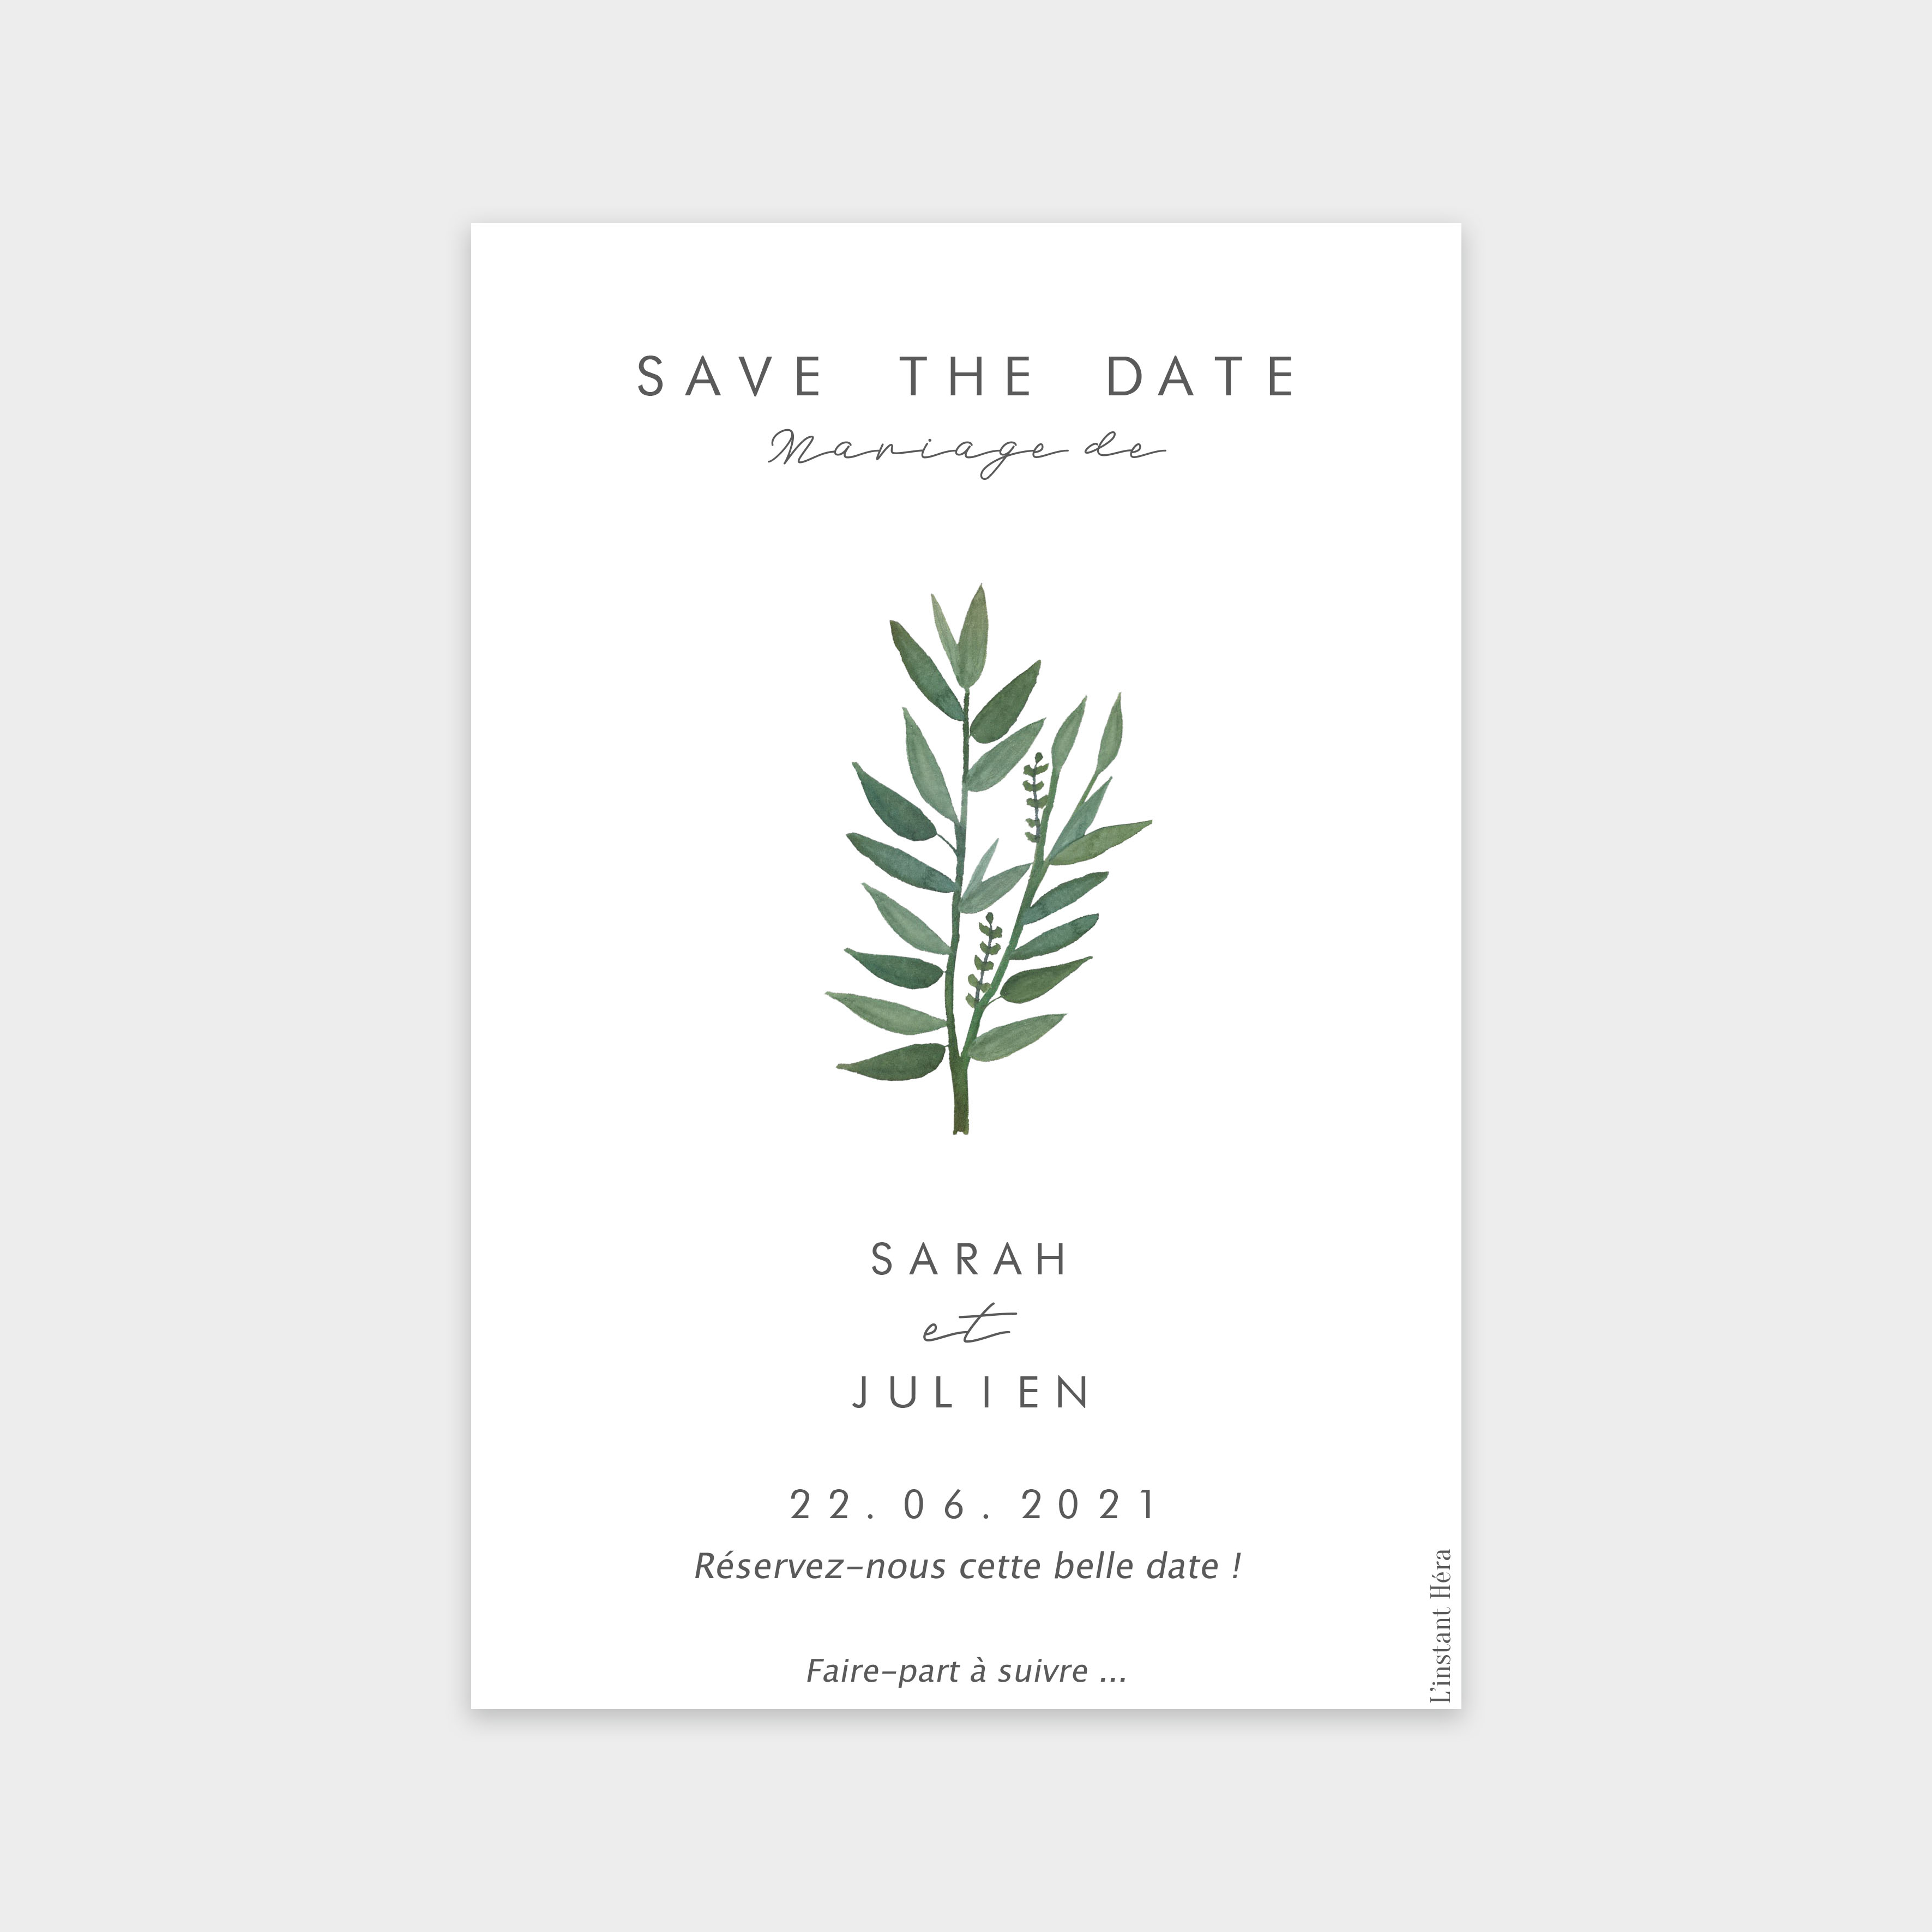 Save the date Instant d'amour